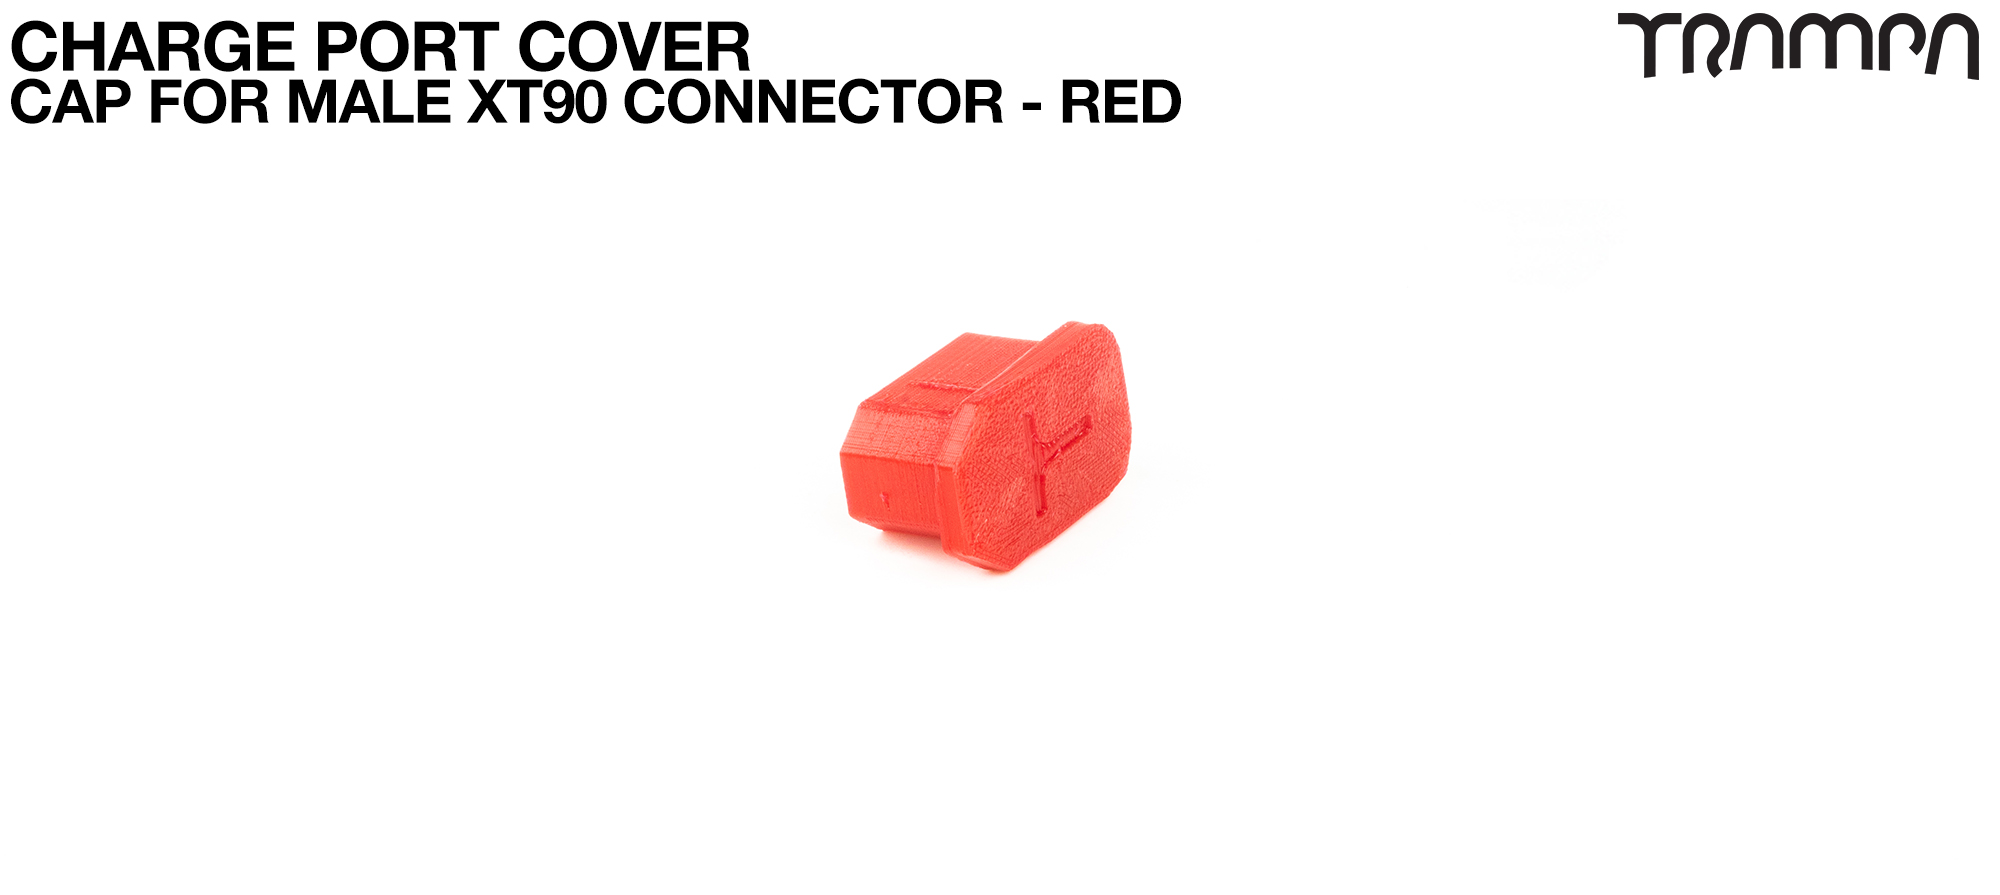 Charge Port Cover - CAP for Male XT90 Connector RED